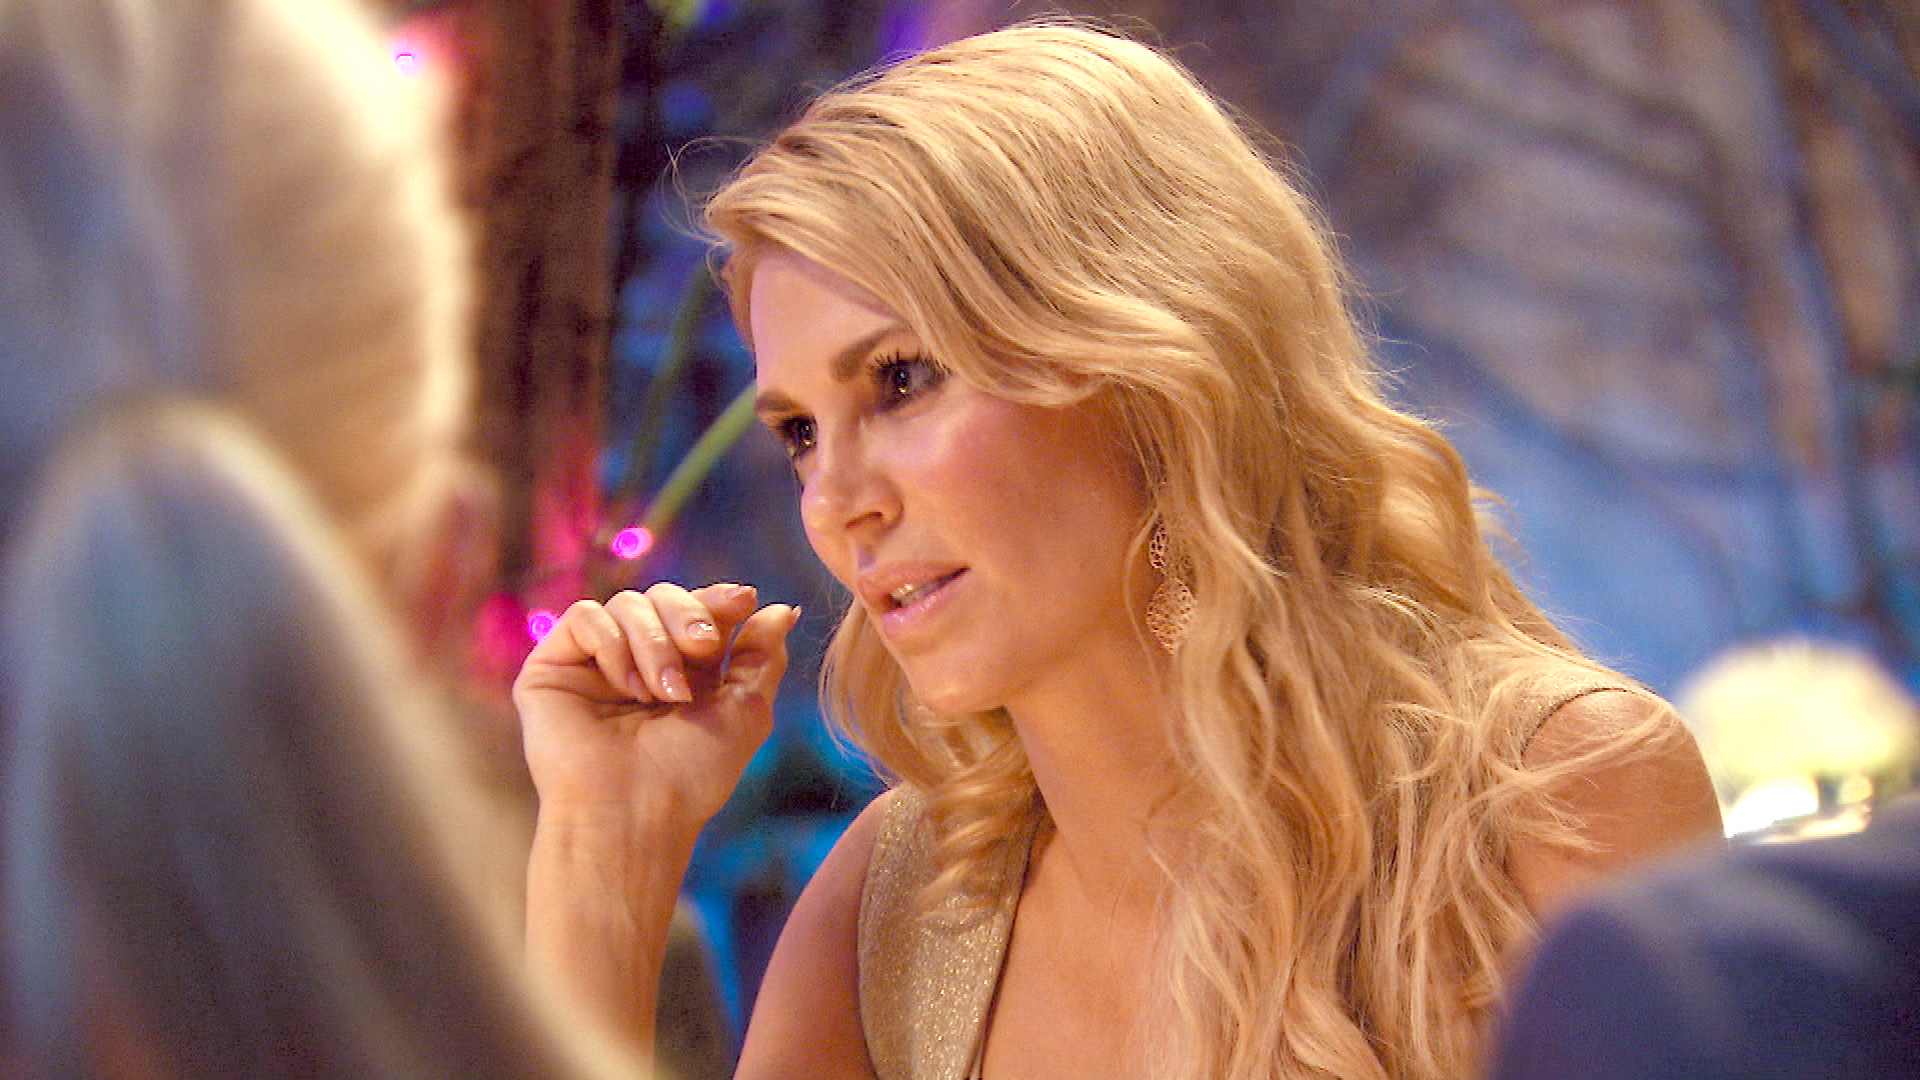 What Planet Does Brandi Glanville Live On?